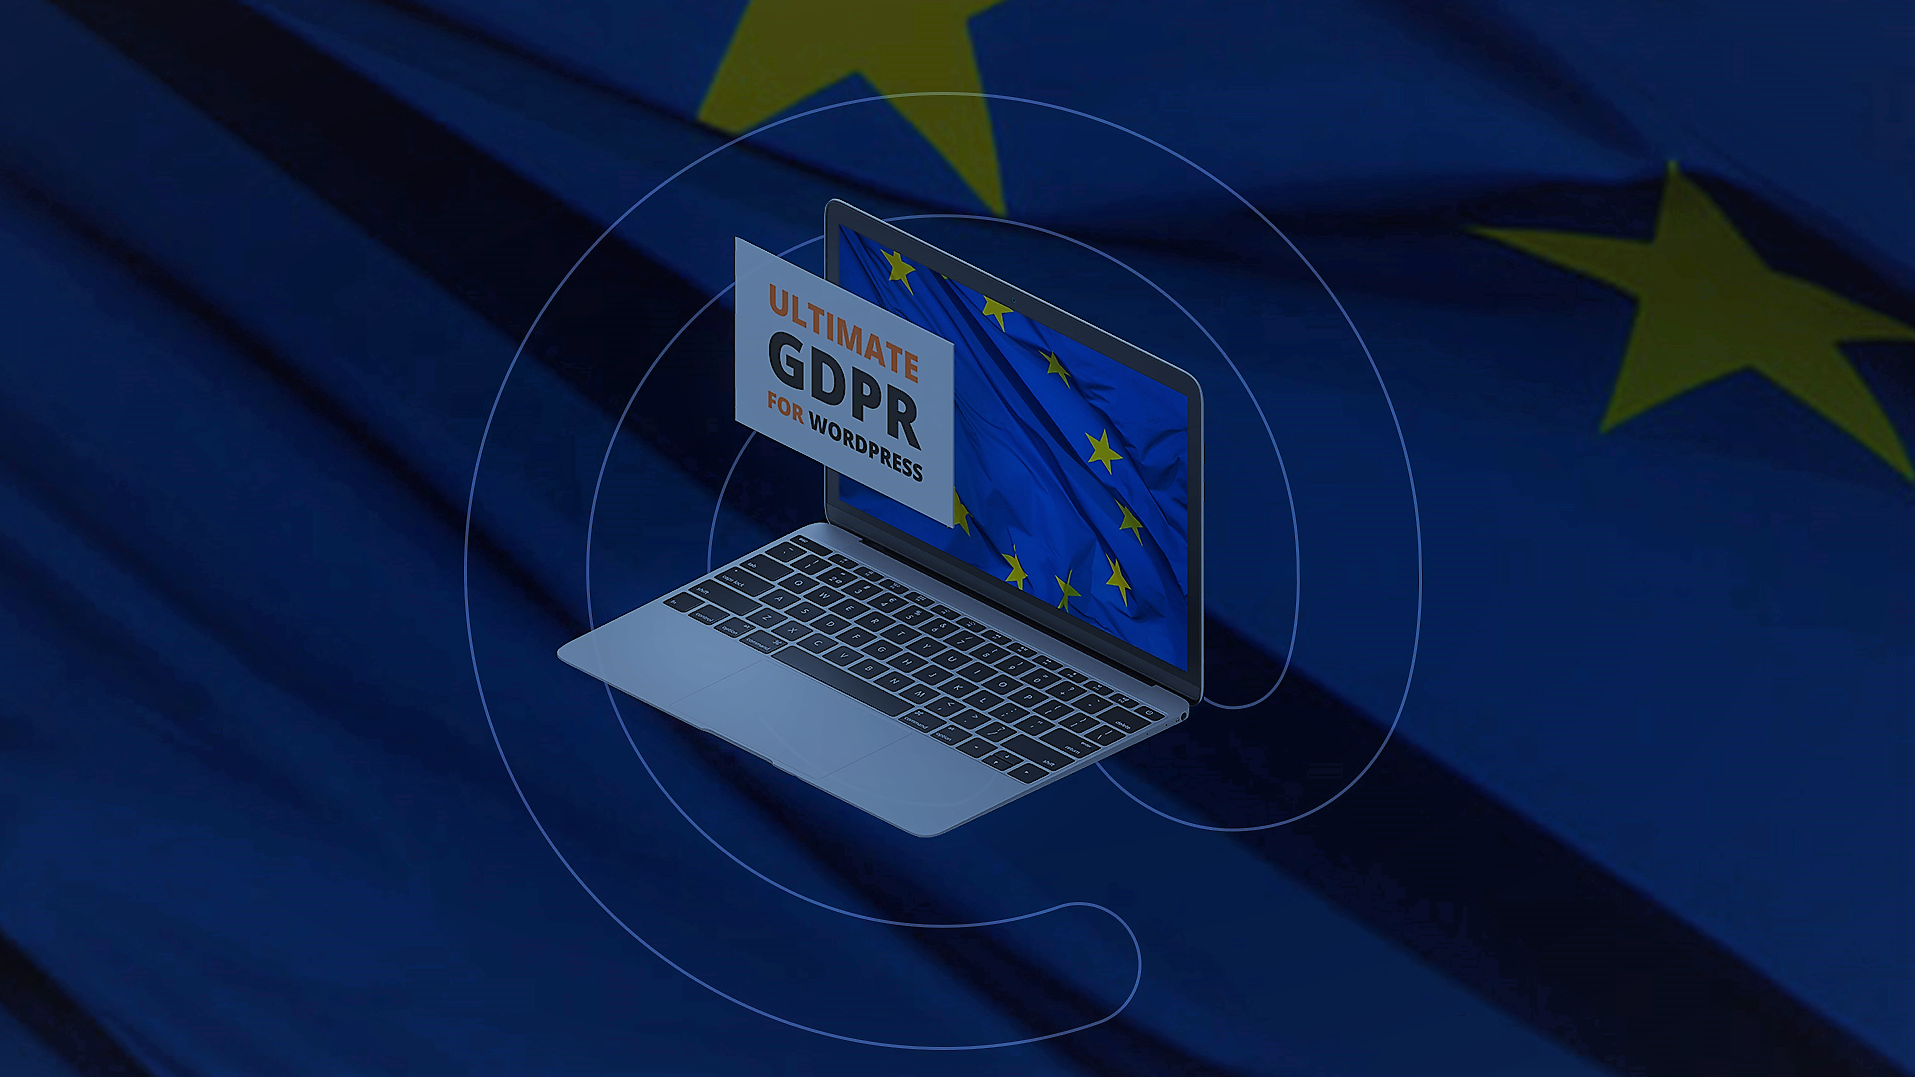 gdpr featured